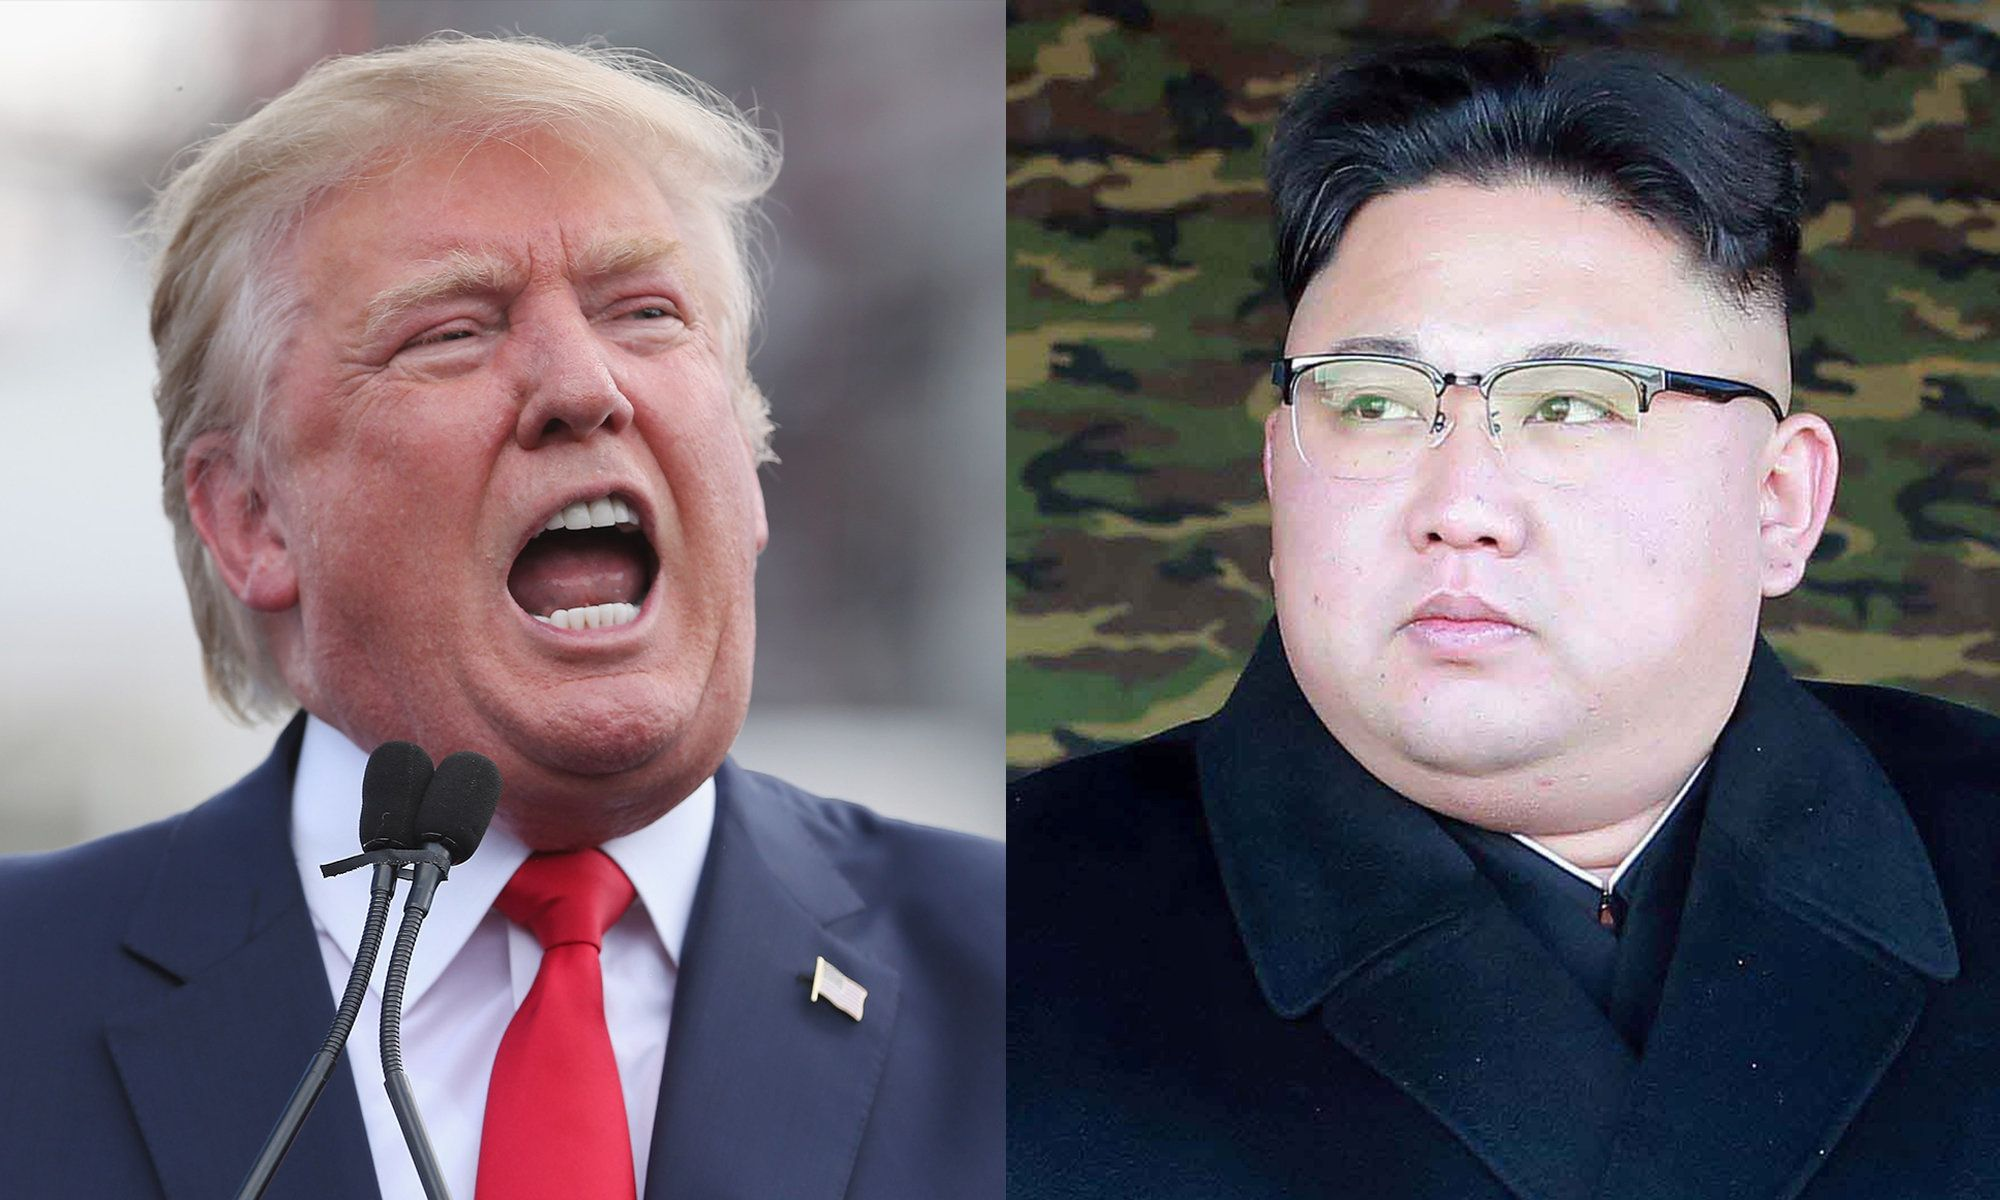 U.S. President Donald Trump and North Korea's leader, Kim Jong Un